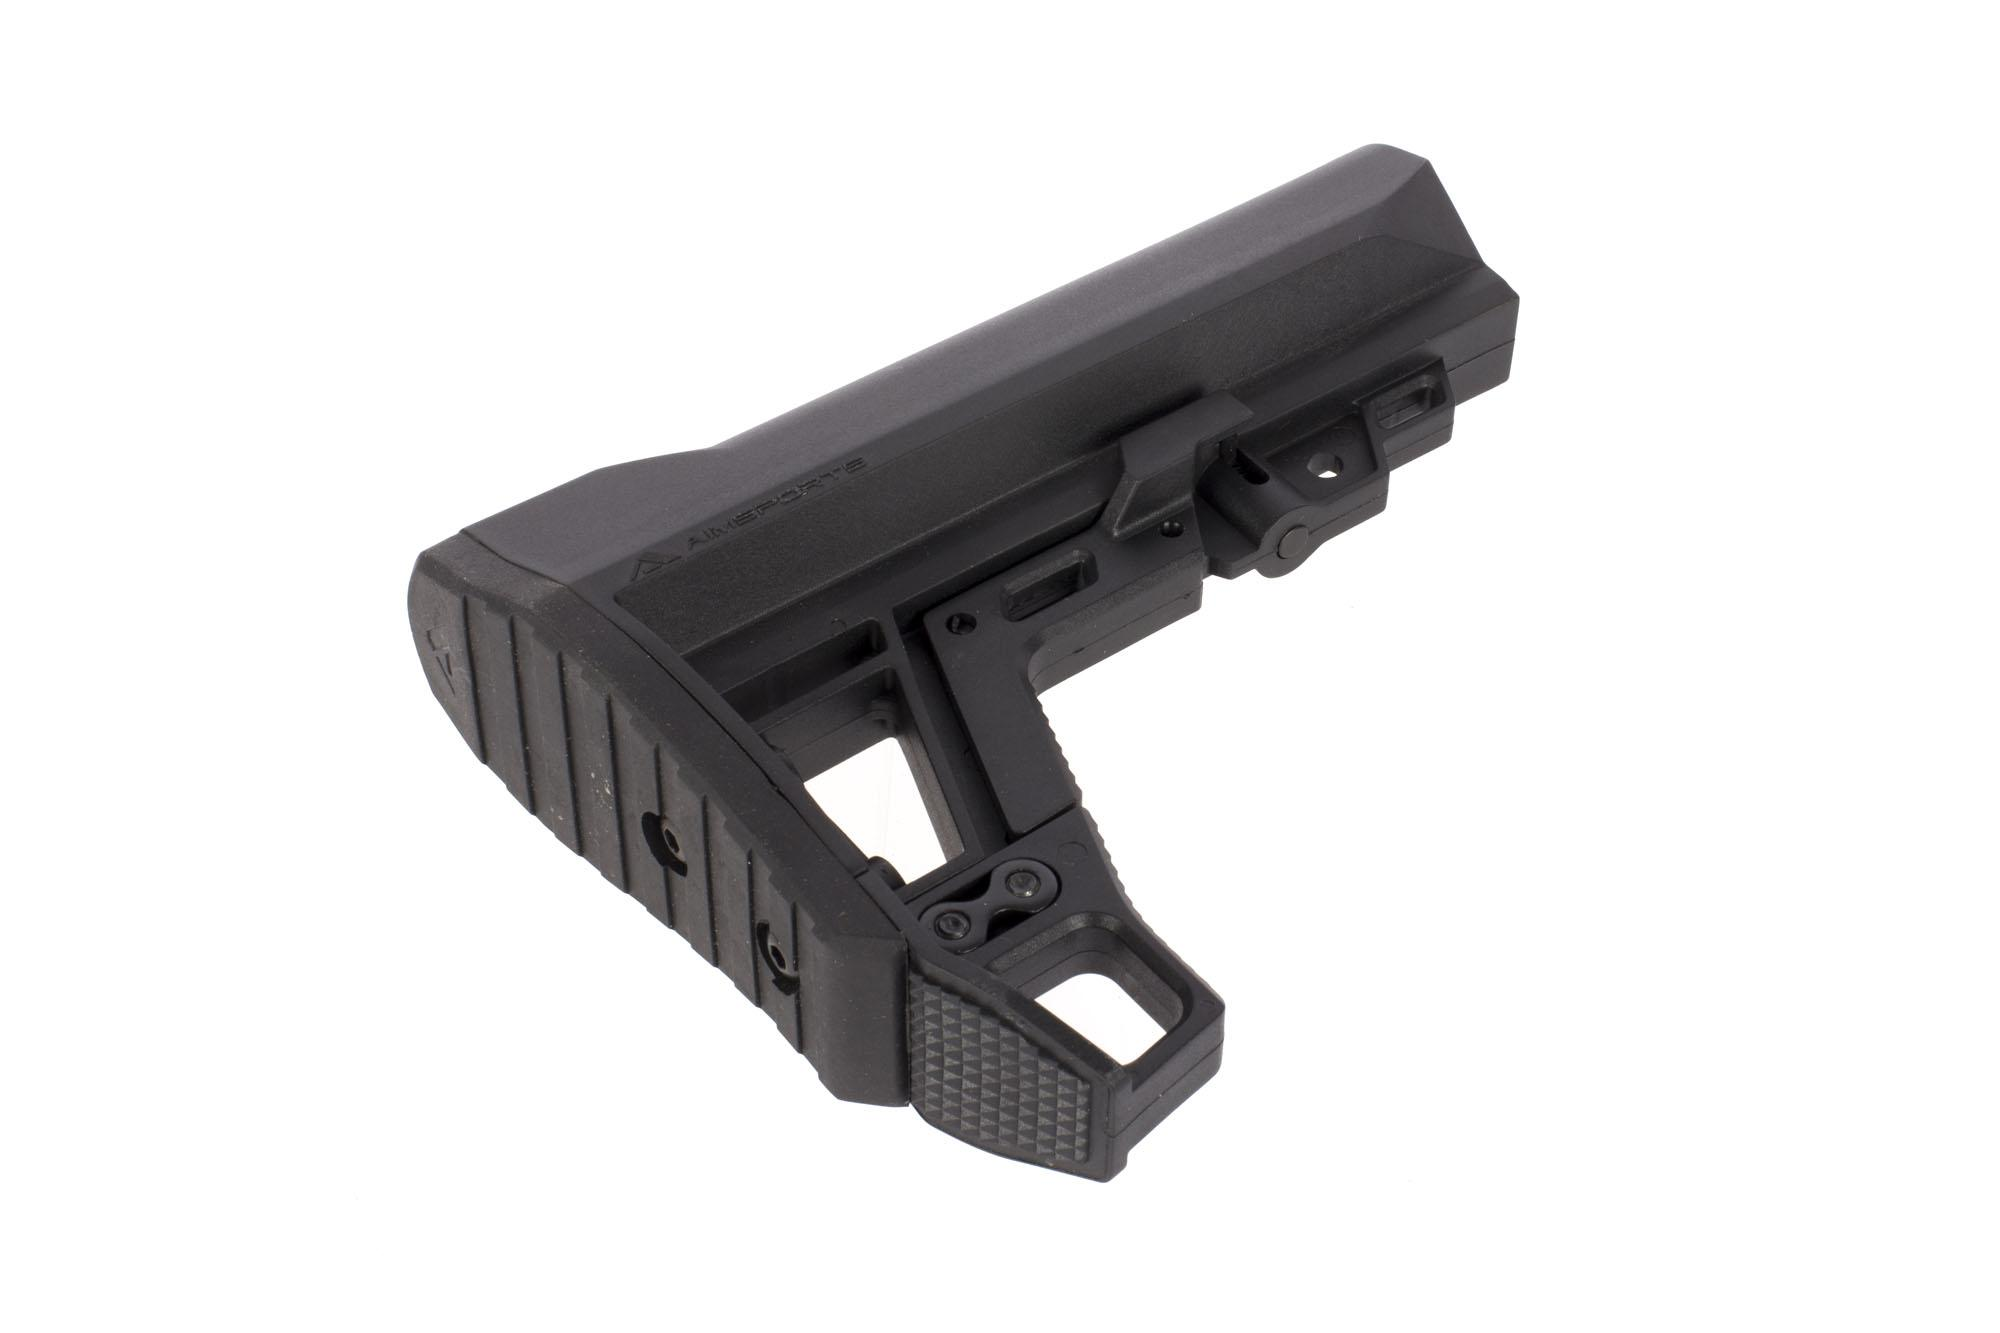 The AimSports AMS AR15 stock features a modular design with removable strike plate